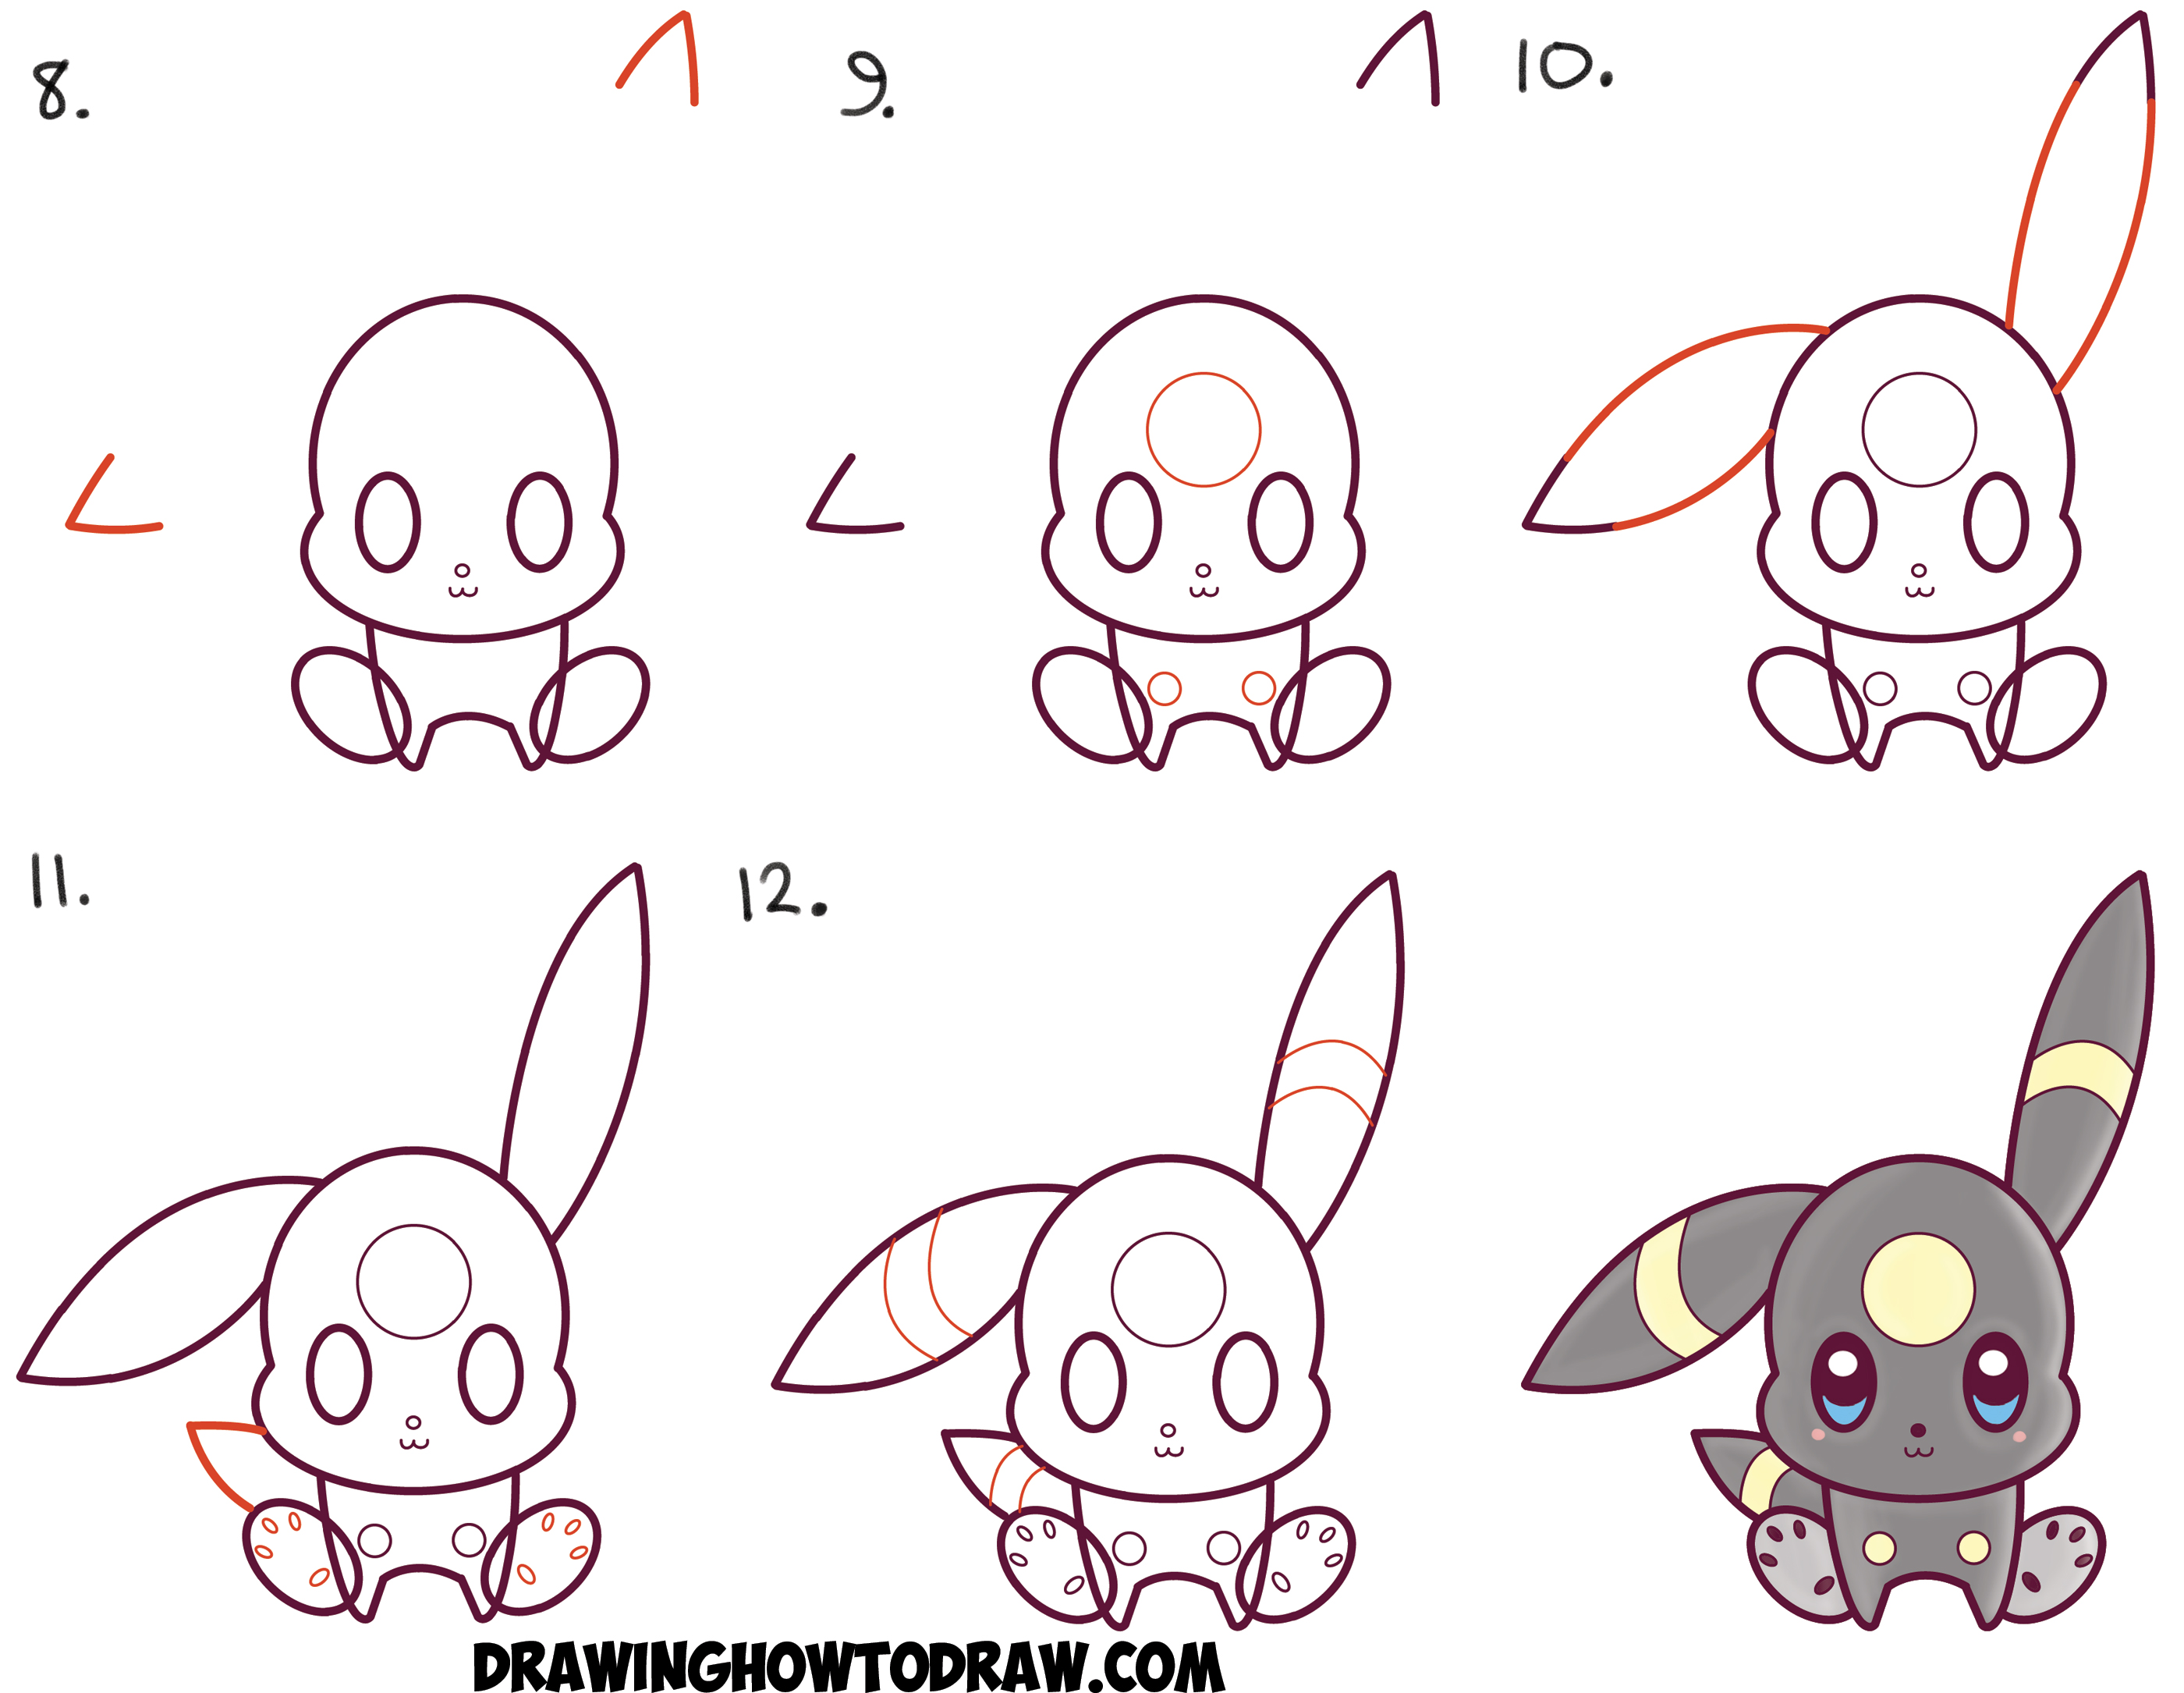 Download Step By Step How To Draw A Face For Kids How To Draw Cute Kawaii